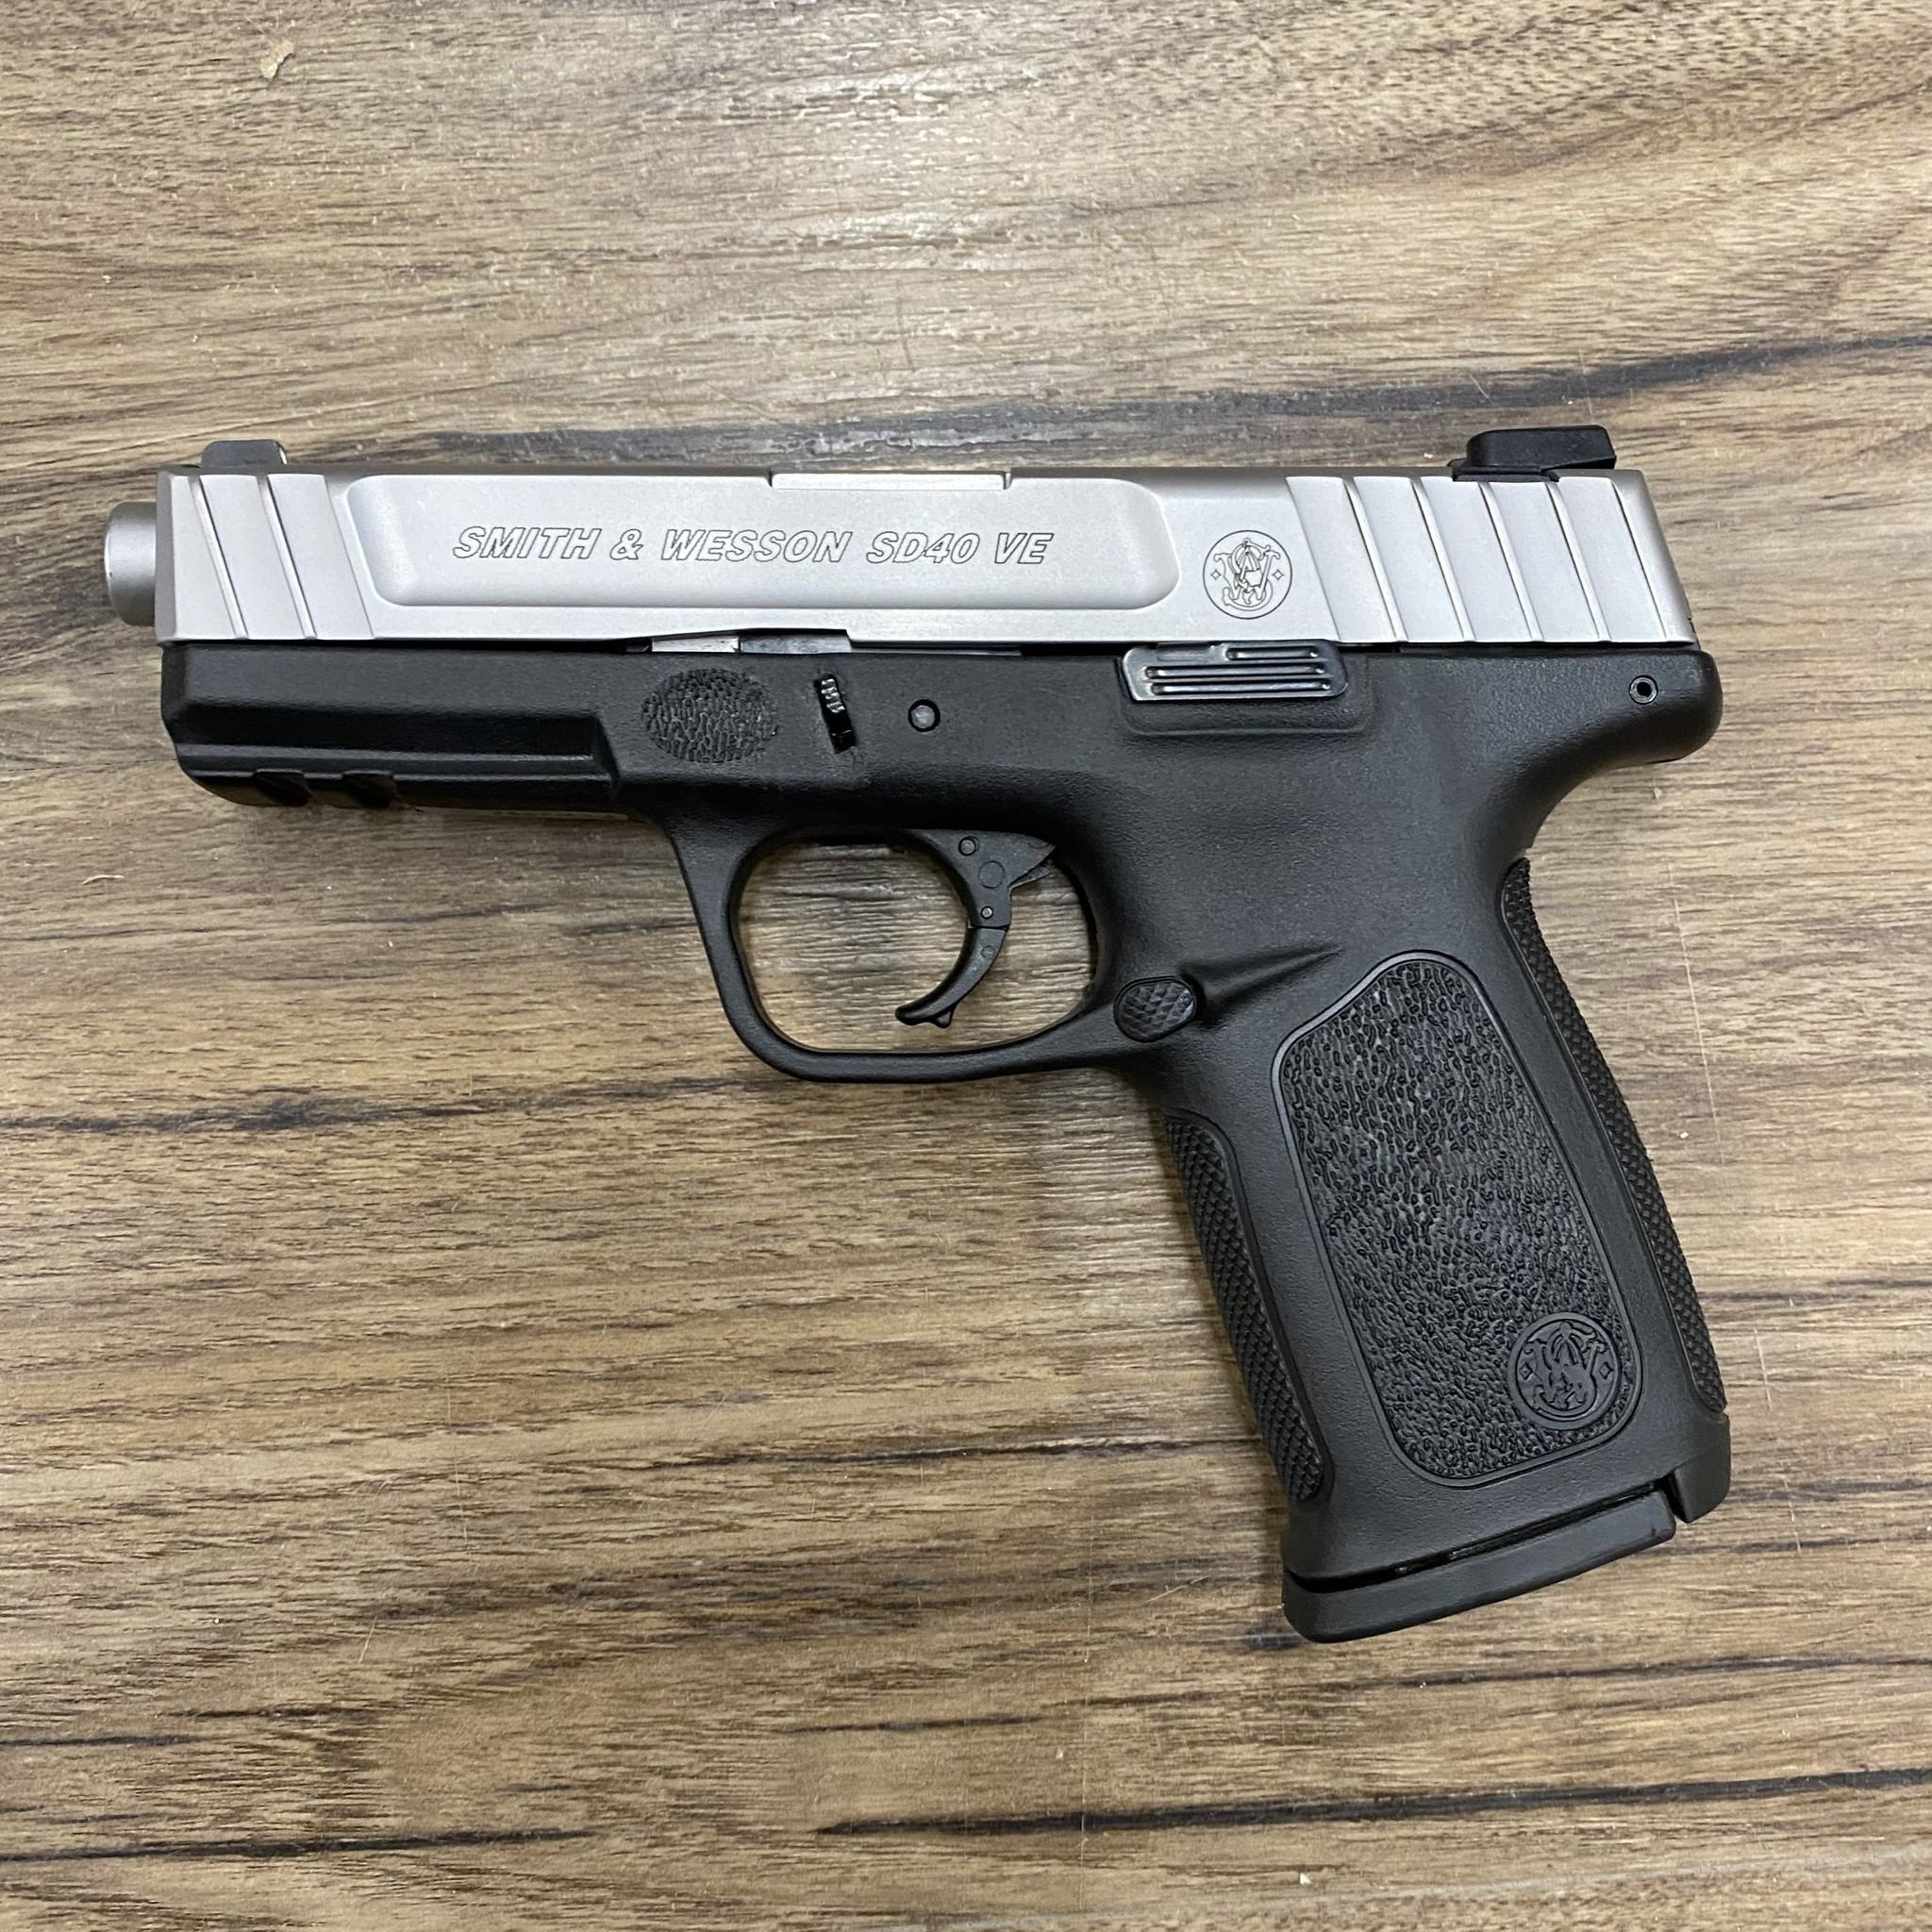 SMITH & WESSON SMITH & WESSON SD40 VE PISTOL, 40 S&W, PRE-OWNED